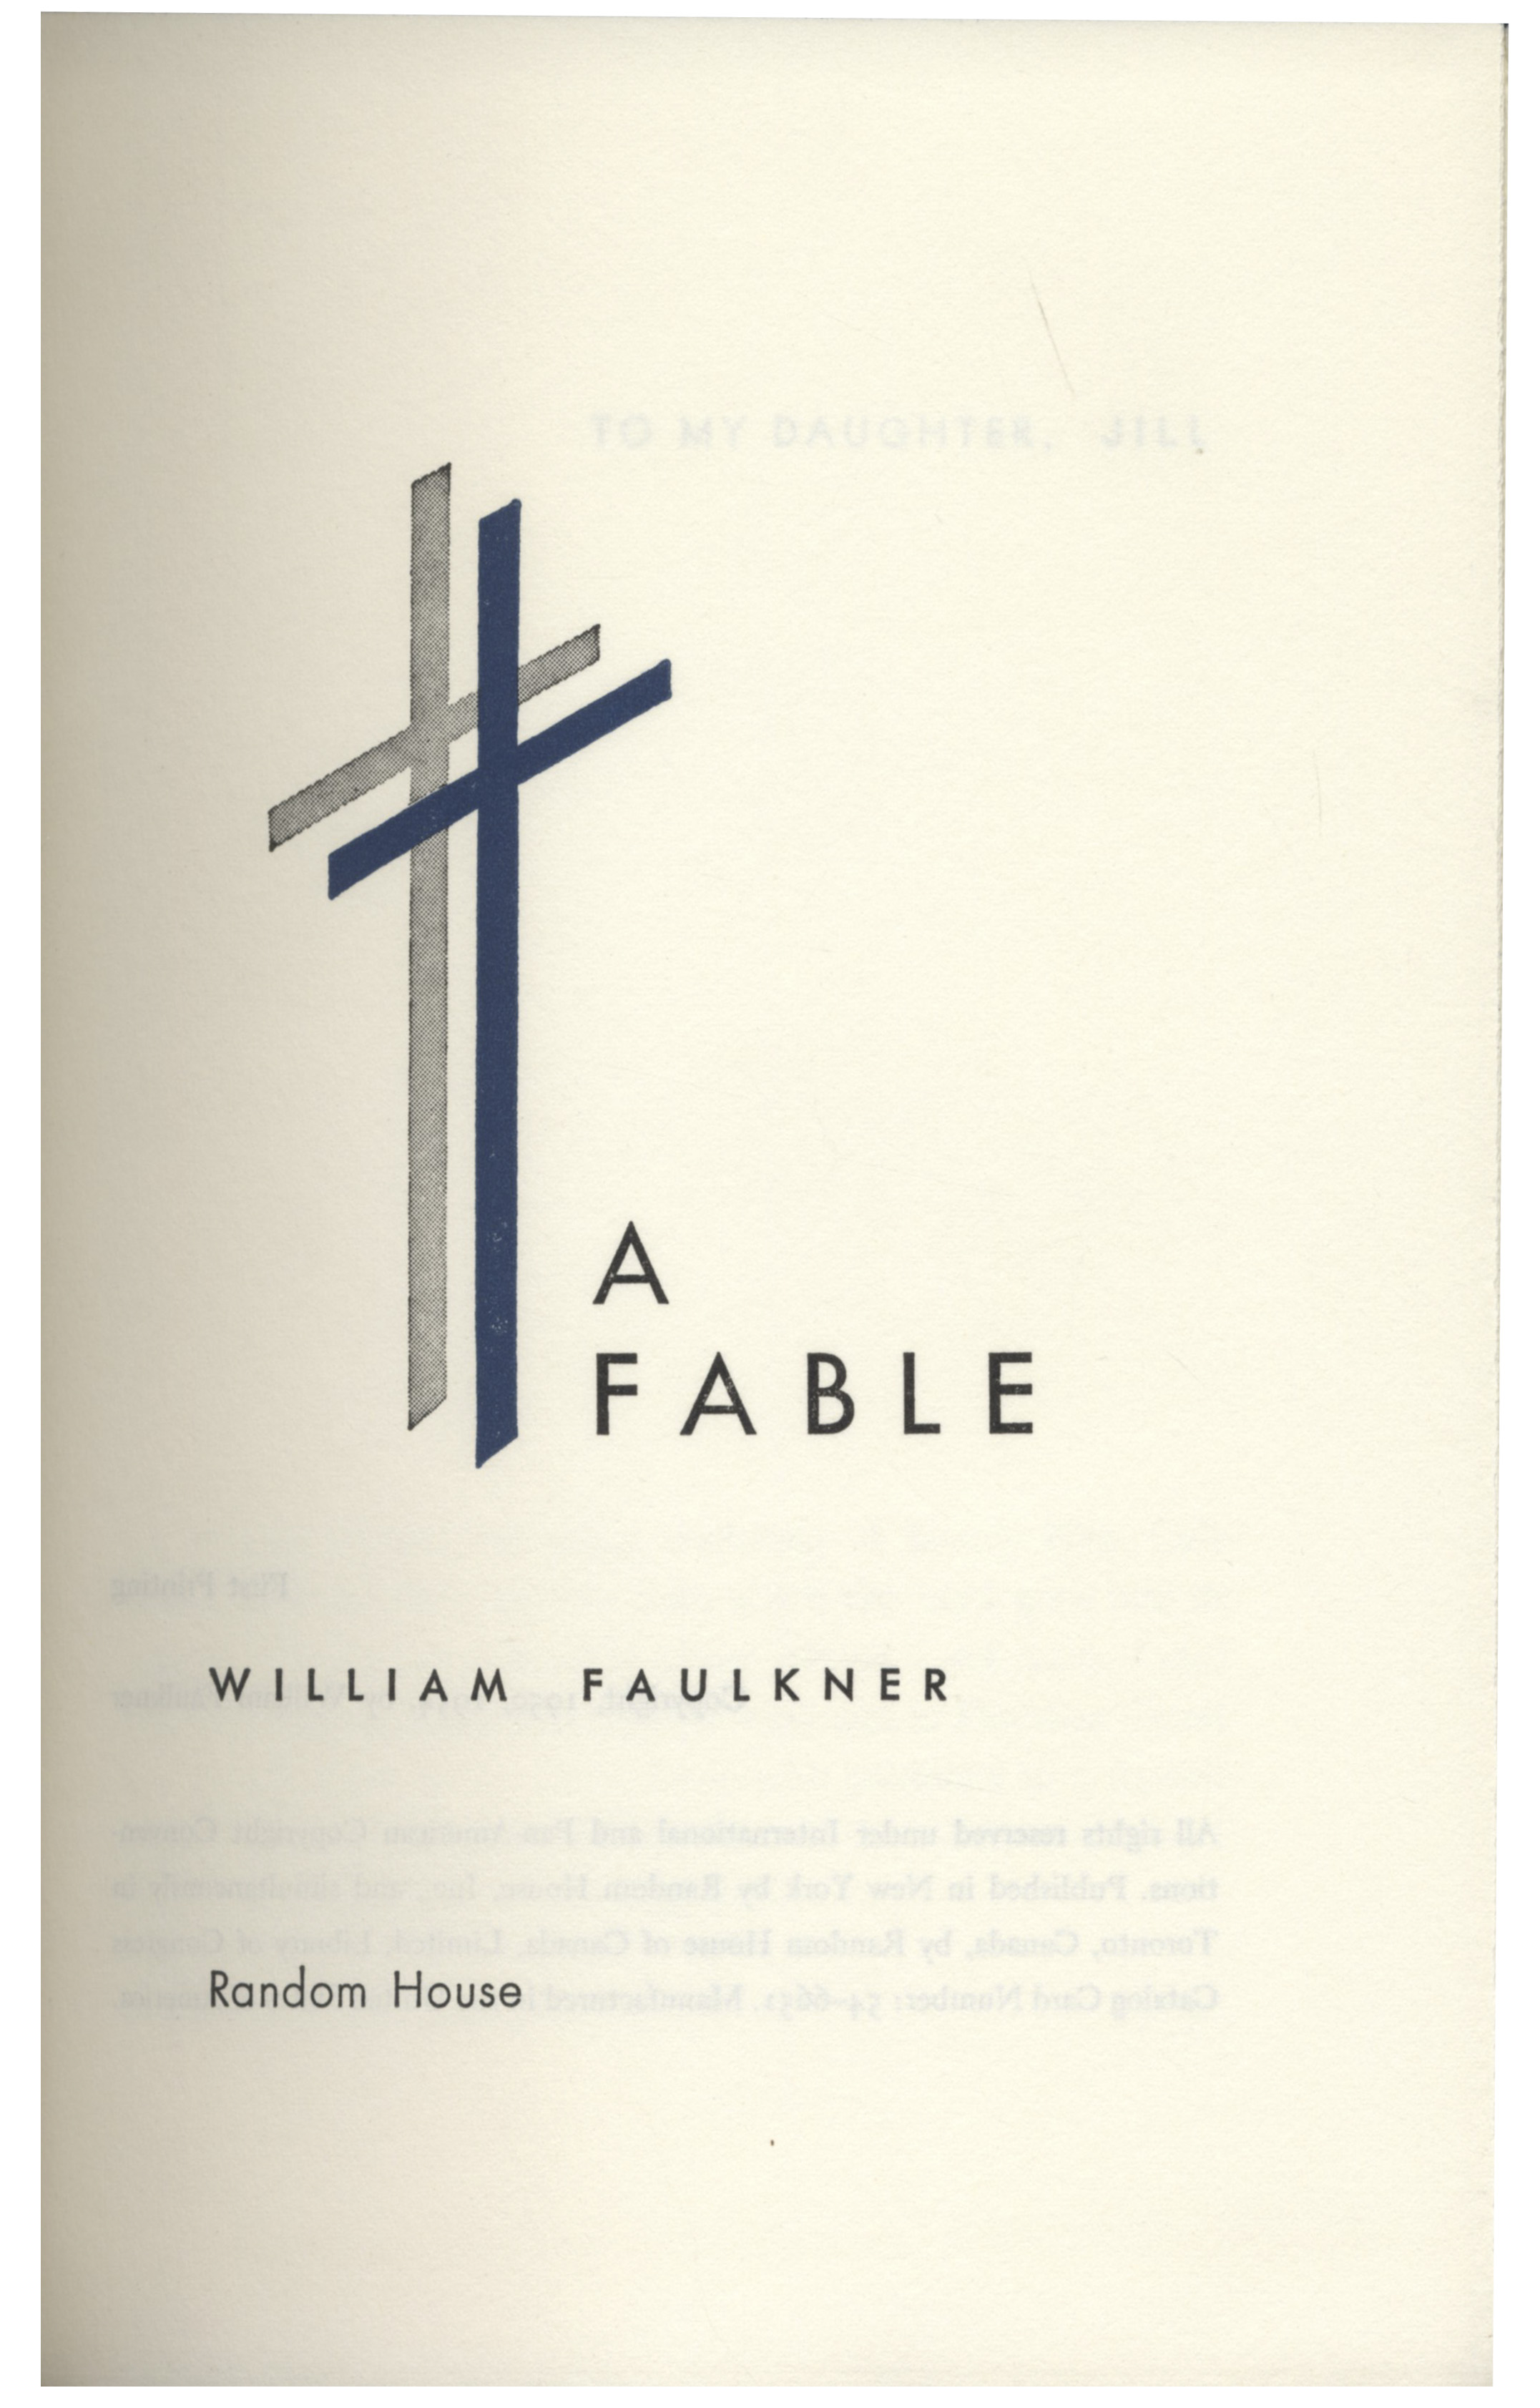 Lot detail william faulkner signed first edition of a fable william faulkner signed first edition of a fable in original biocorpaavc